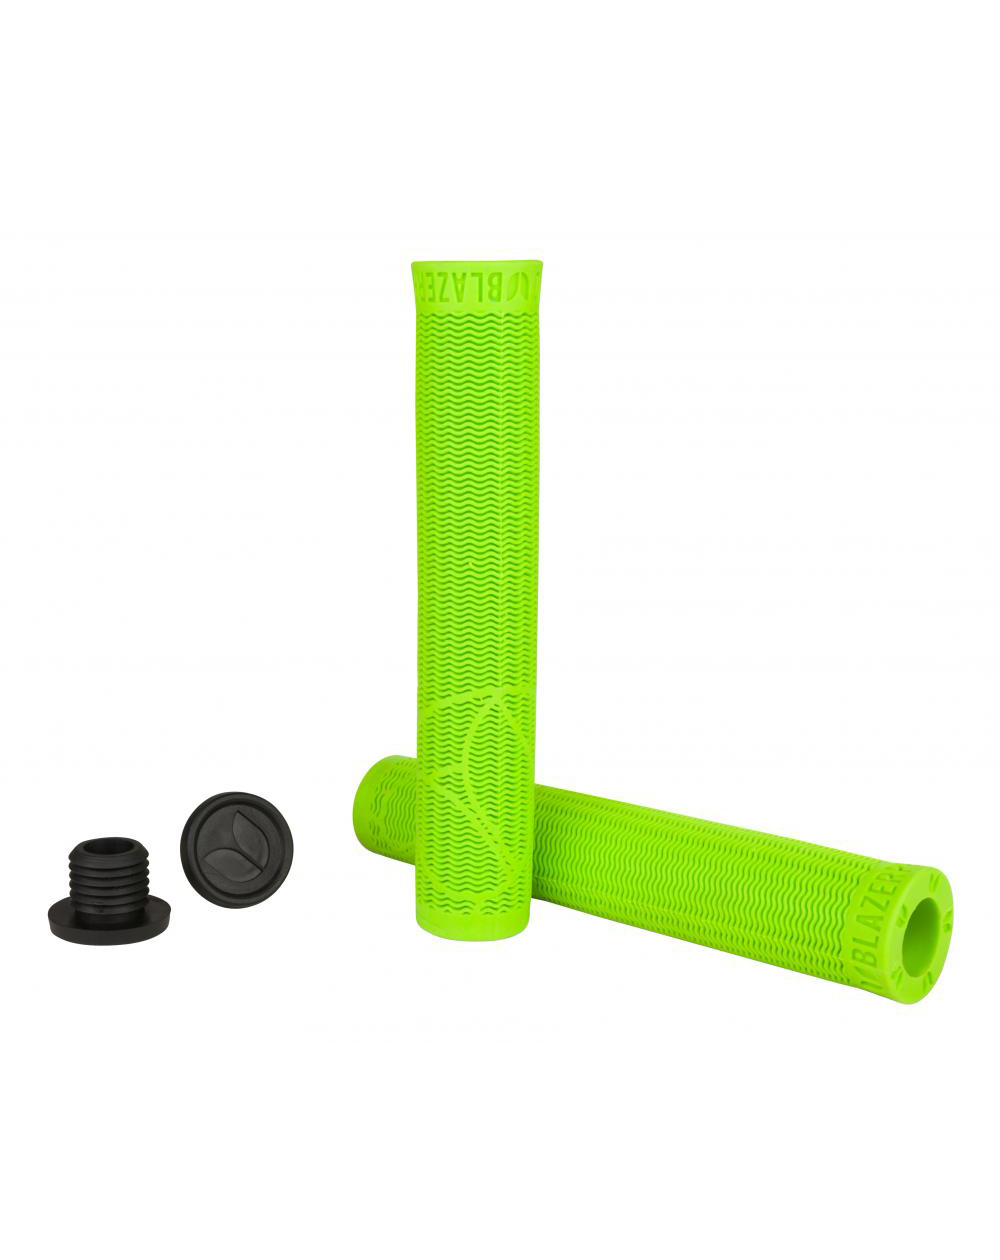 Blazer Pro Calibre Scooter Grips Green pack of 2